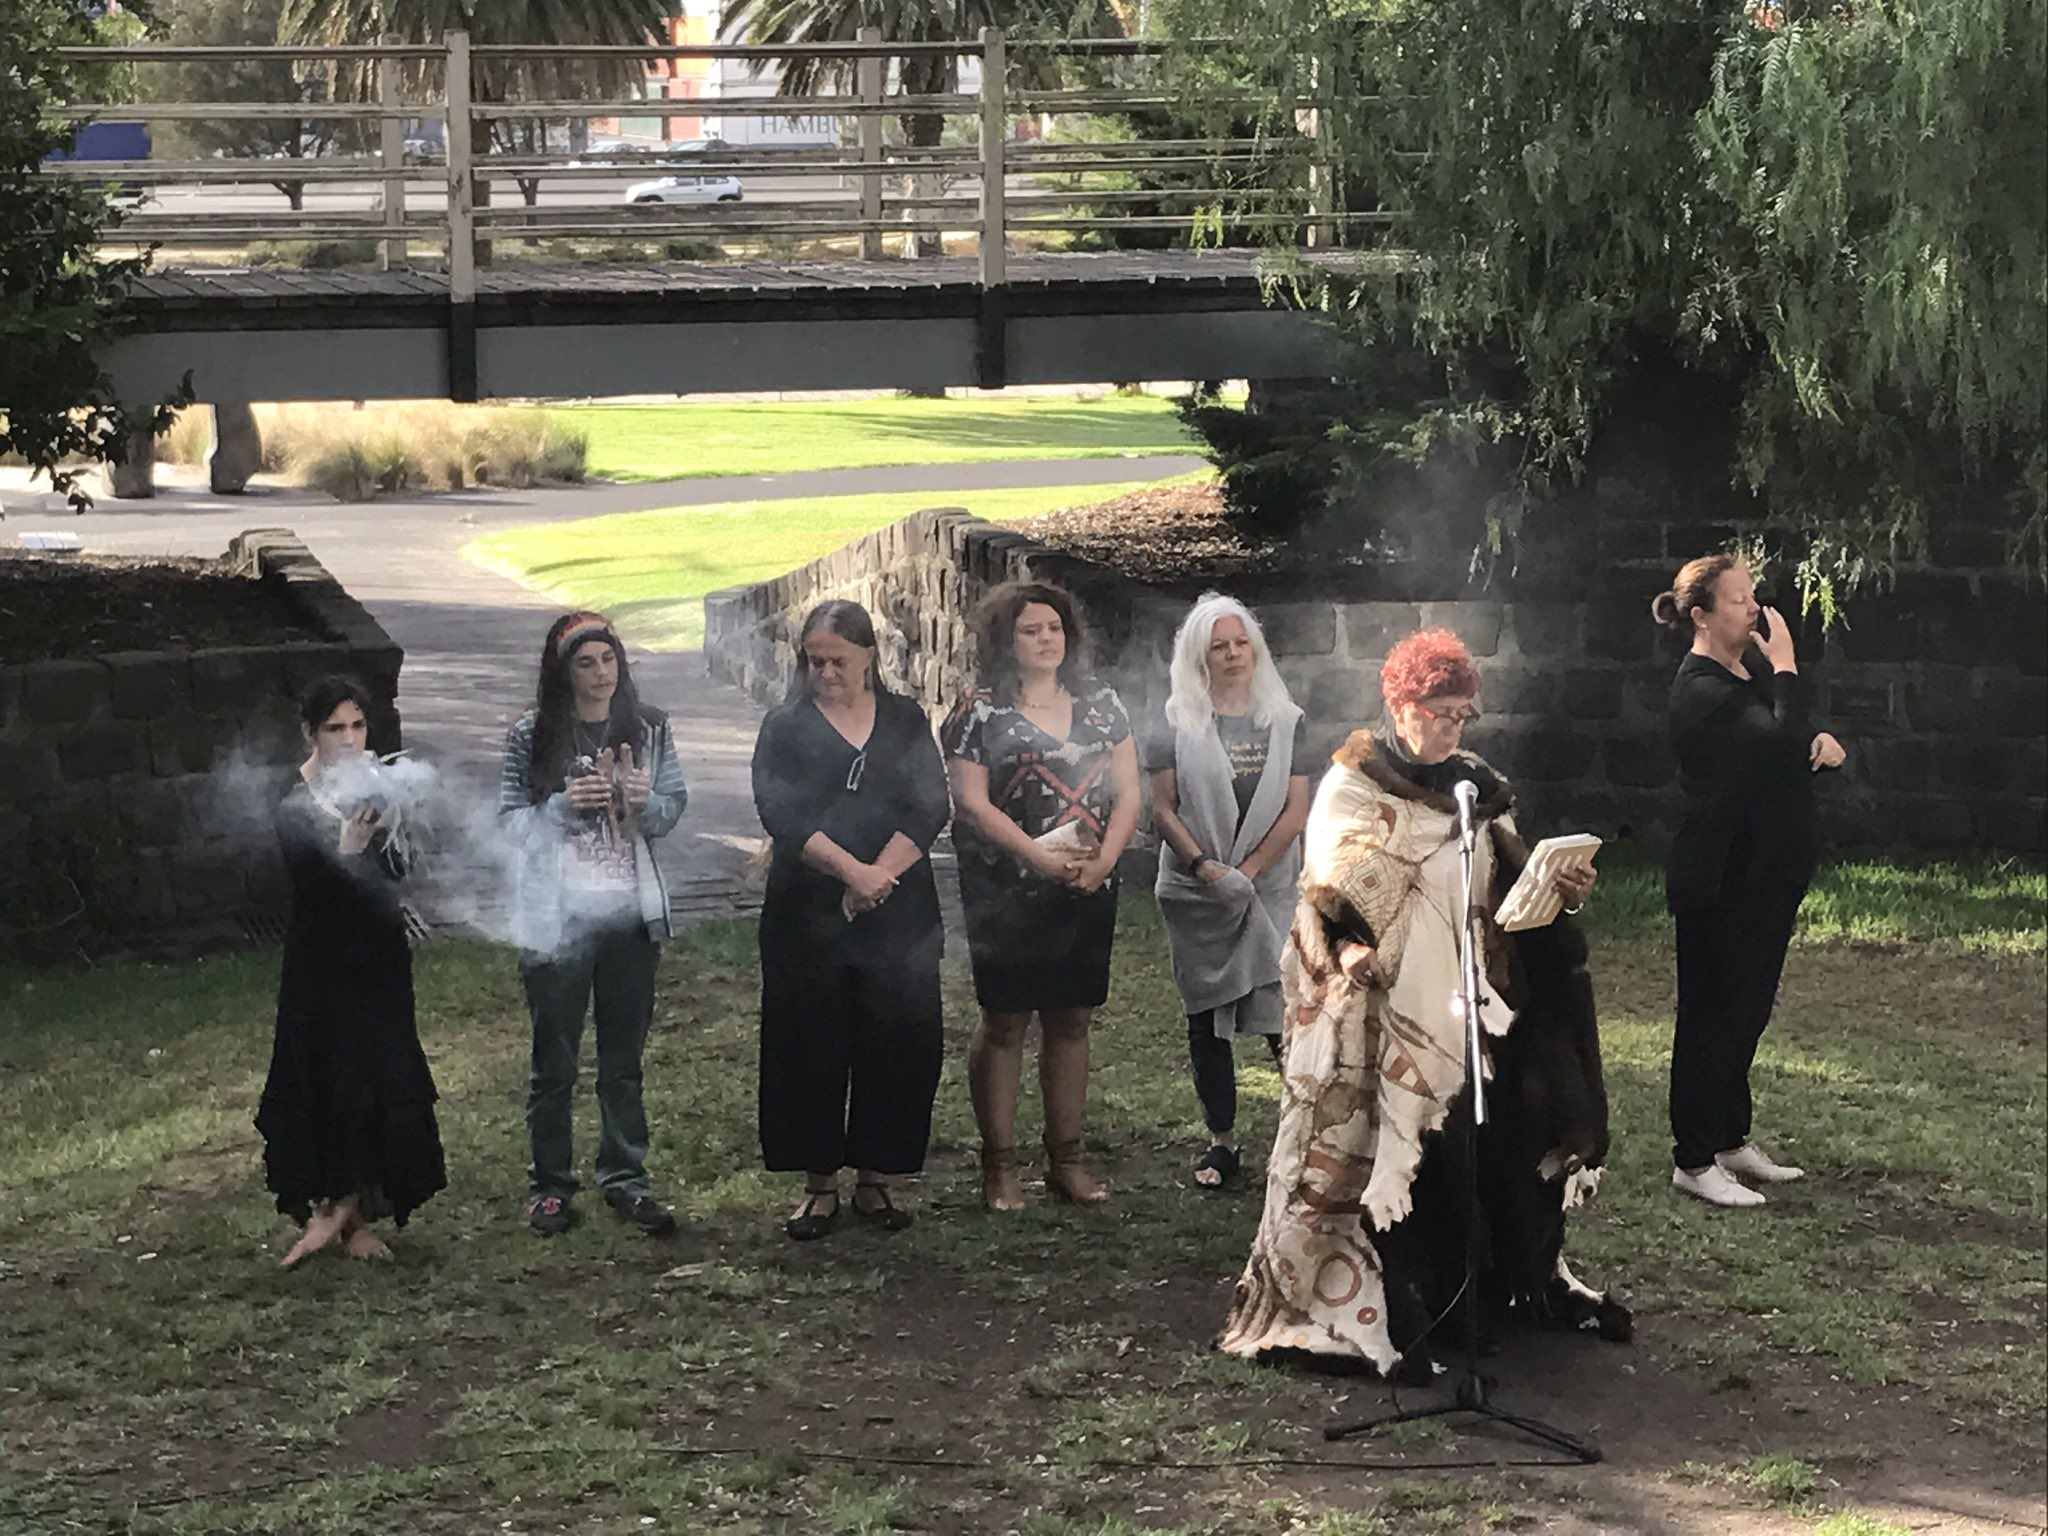 And we're off... #WoWMelb @Footscrayarts https://t.co/VdSva5DO3p